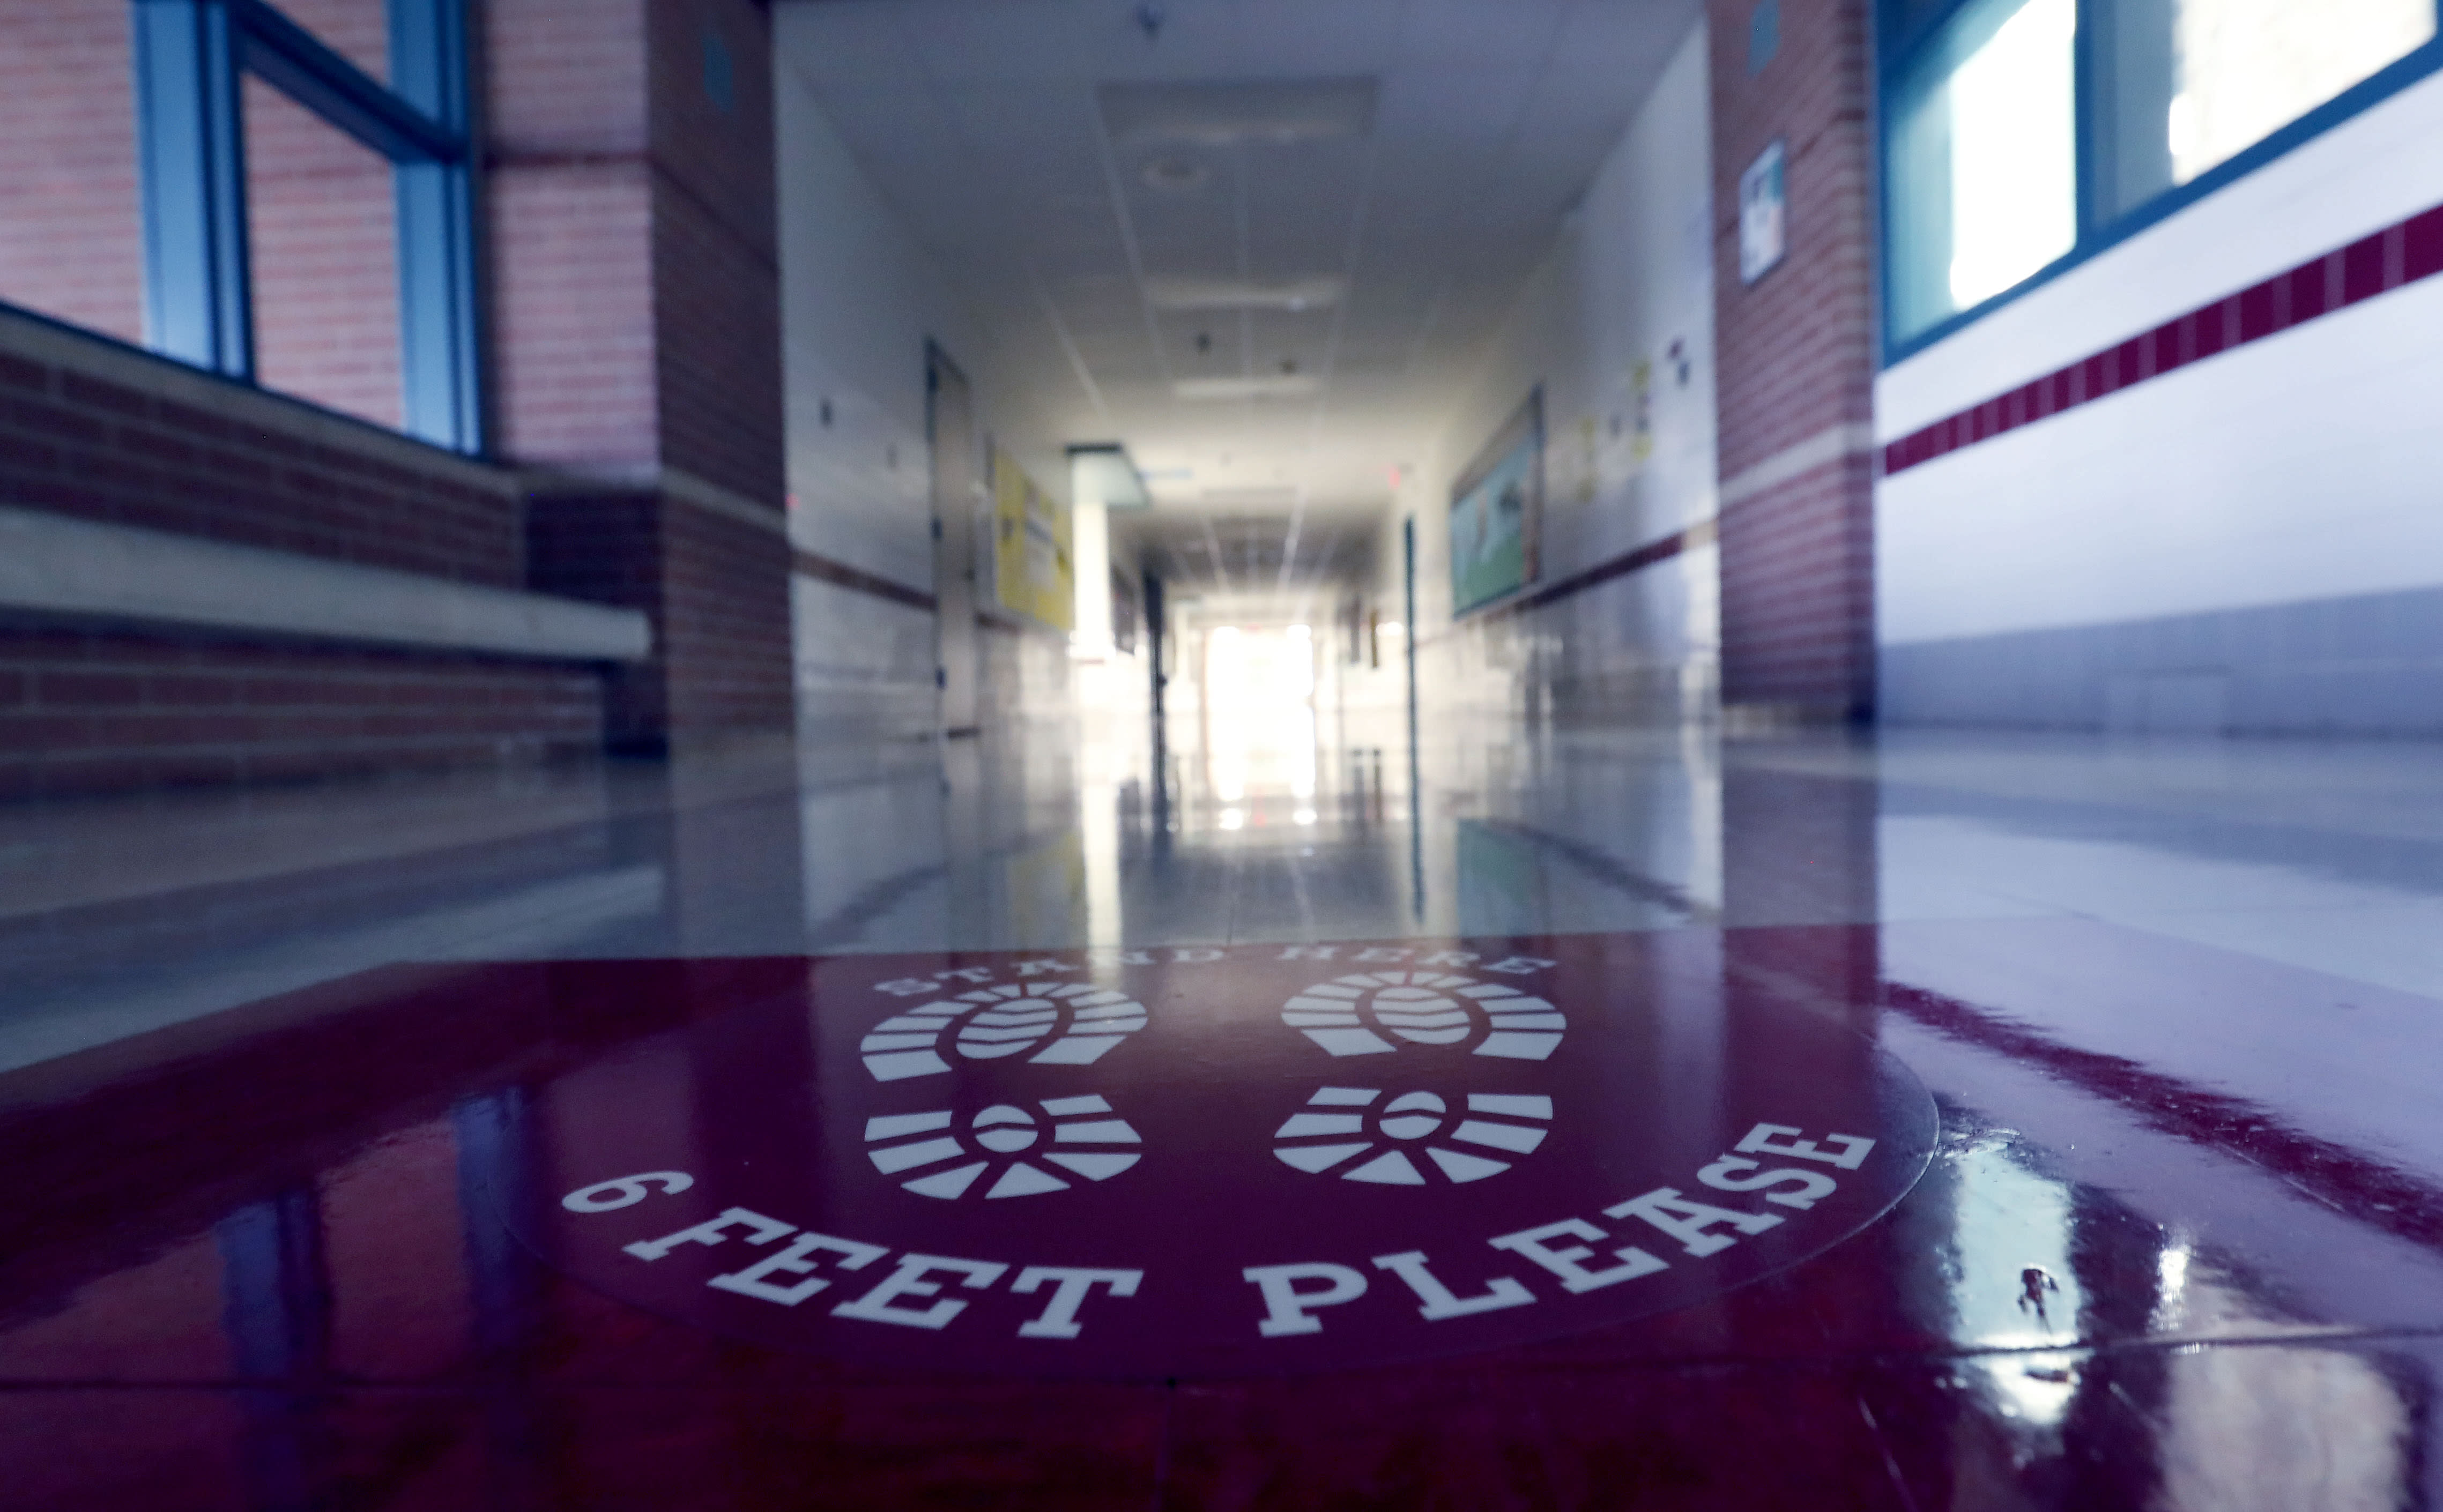 A social distancing reminder sits on the floor of an empty hallway at Stephens Elementary School in Rowlett, Texas, Wednesday, July 22, 2020.(AP Photo/LM Otero)